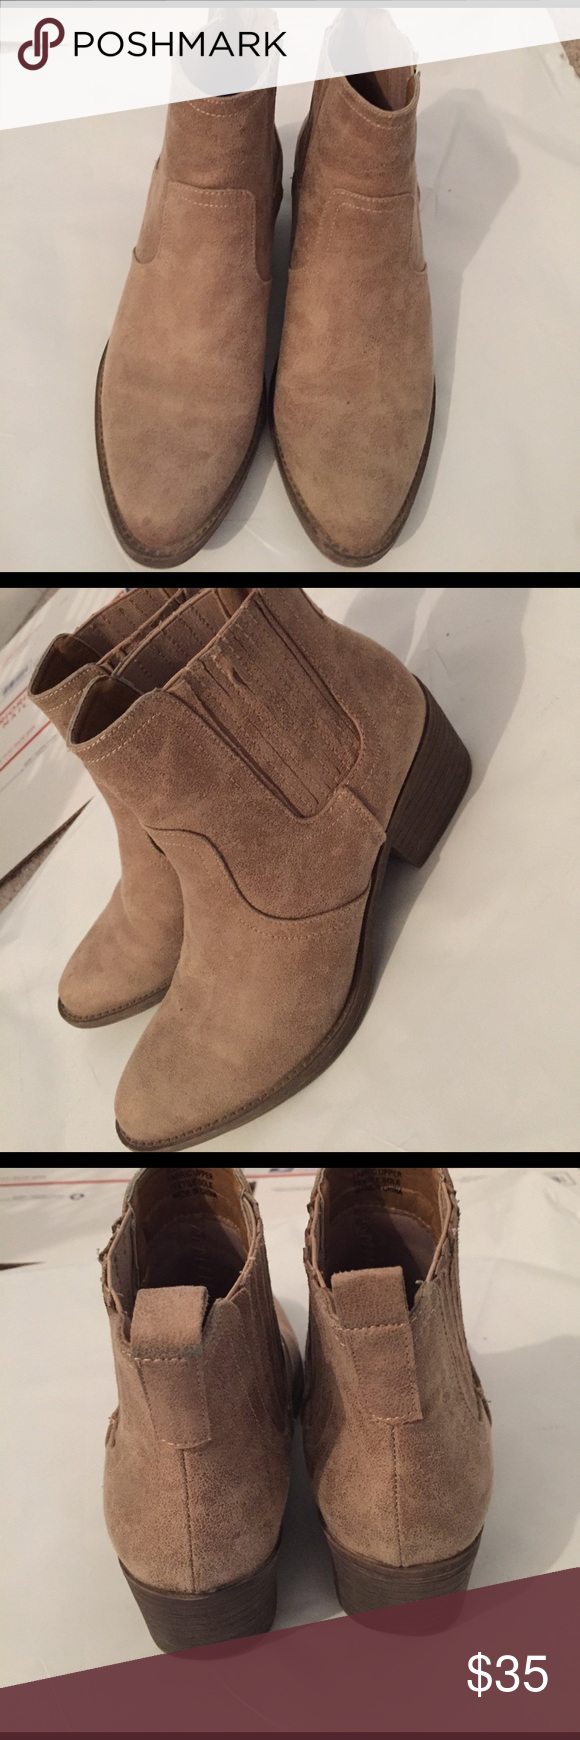 Booties Worn once. Great shape Volatile Shoes Ankle Boots & Booties